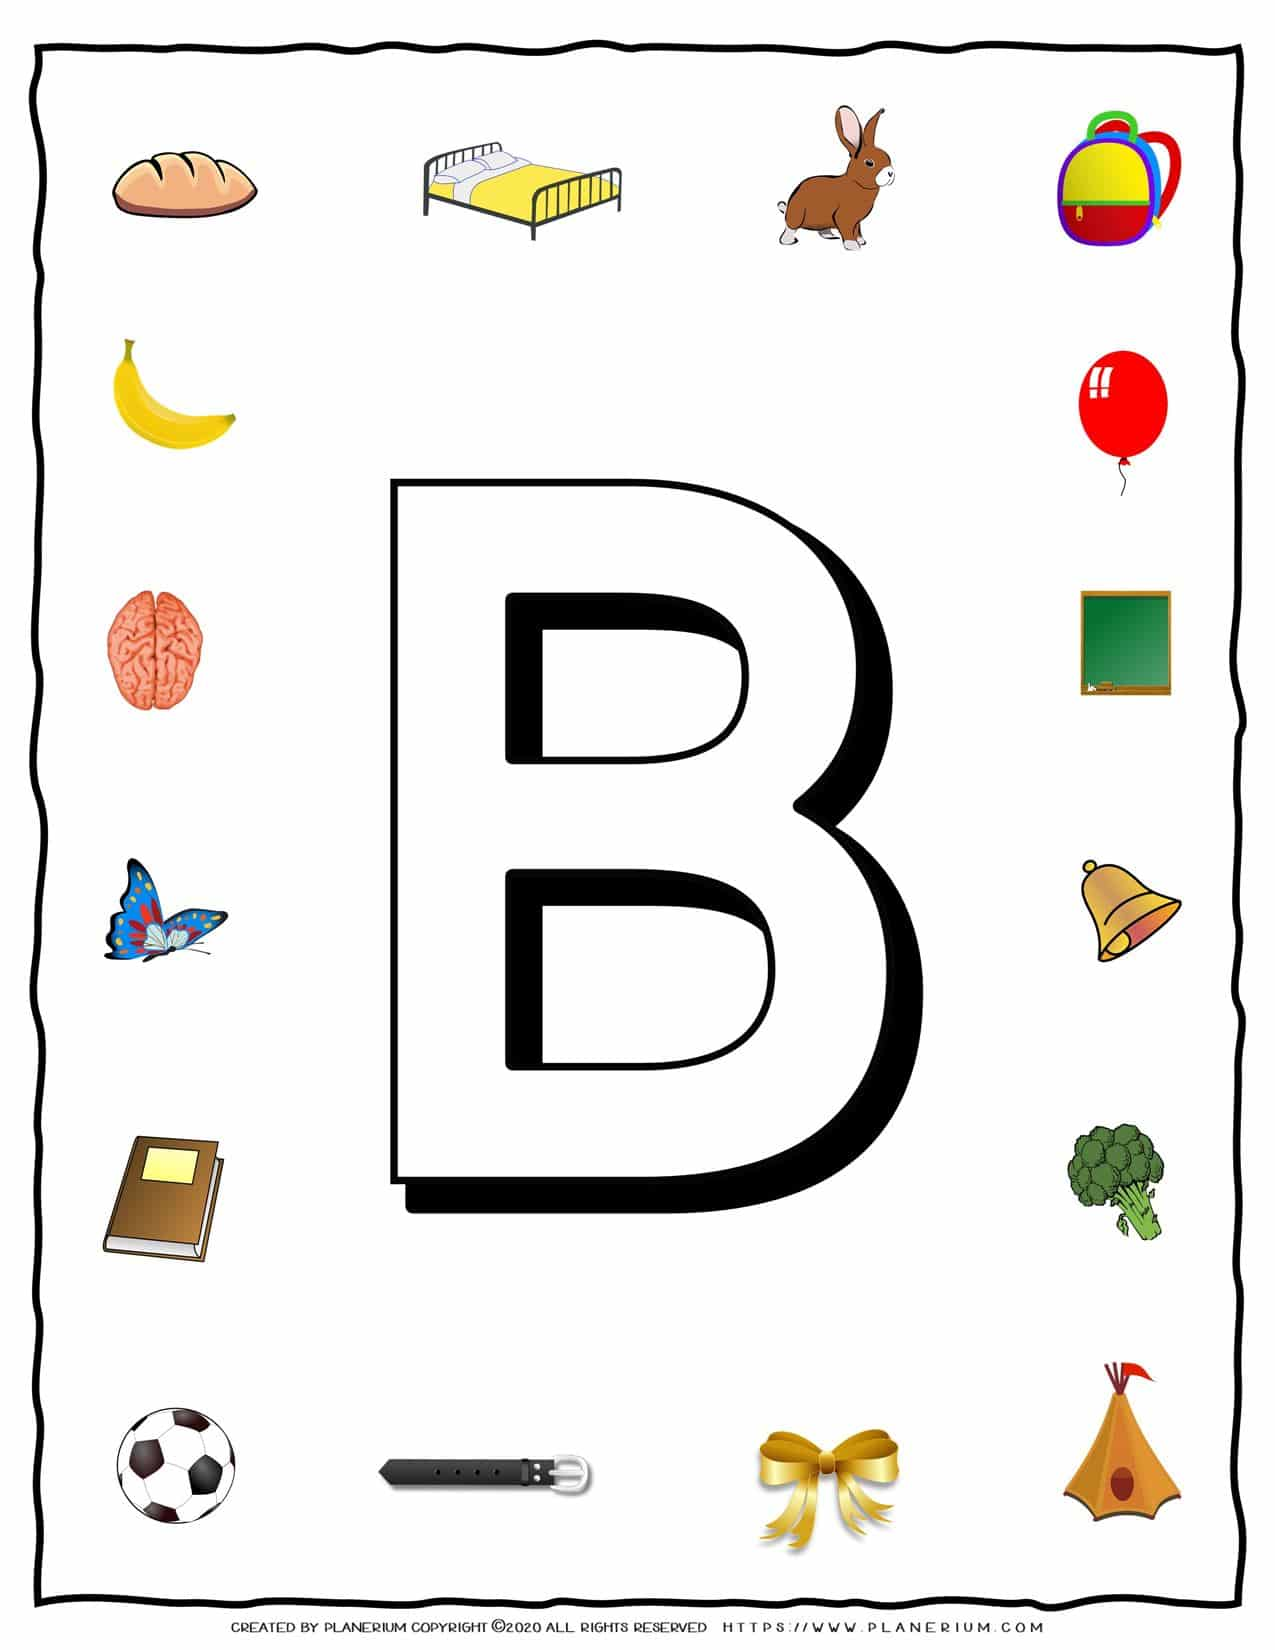 English Alphabet - Objects that starts with B   Planerium